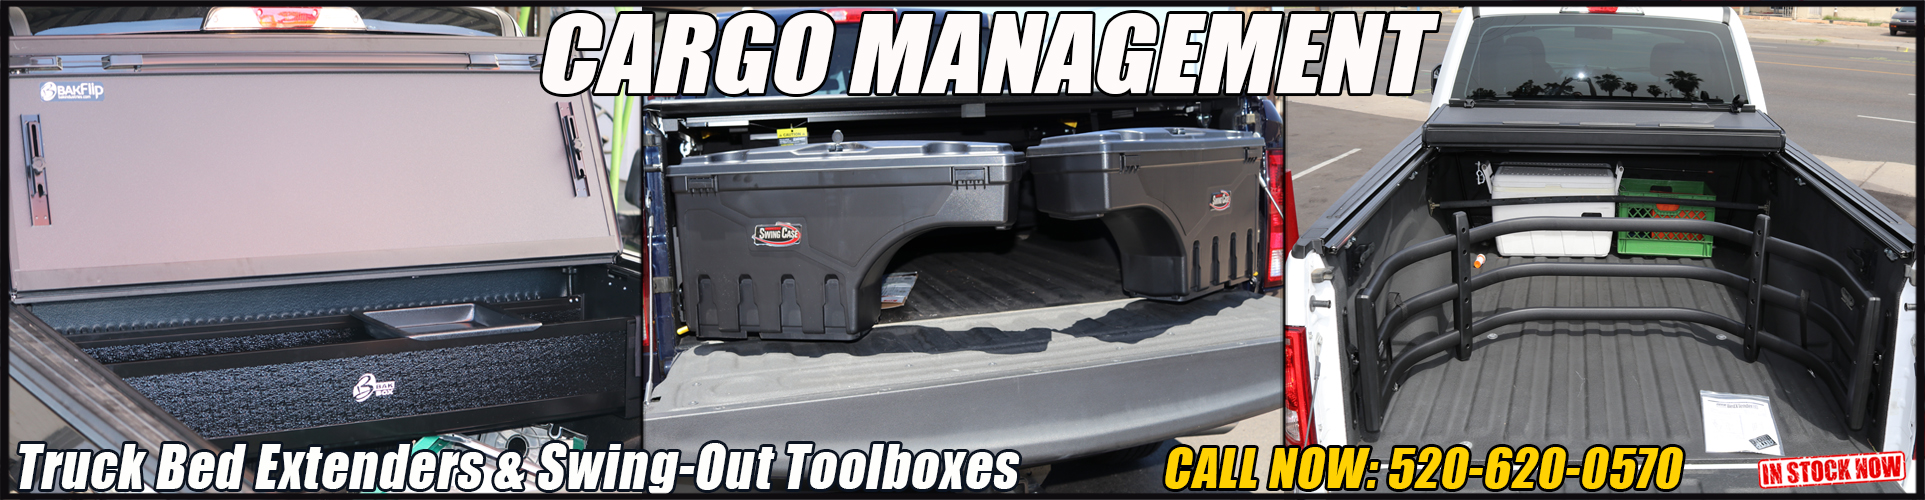 Truck Bed Accessories >> Truck Bed Accessories Max Truck Plus